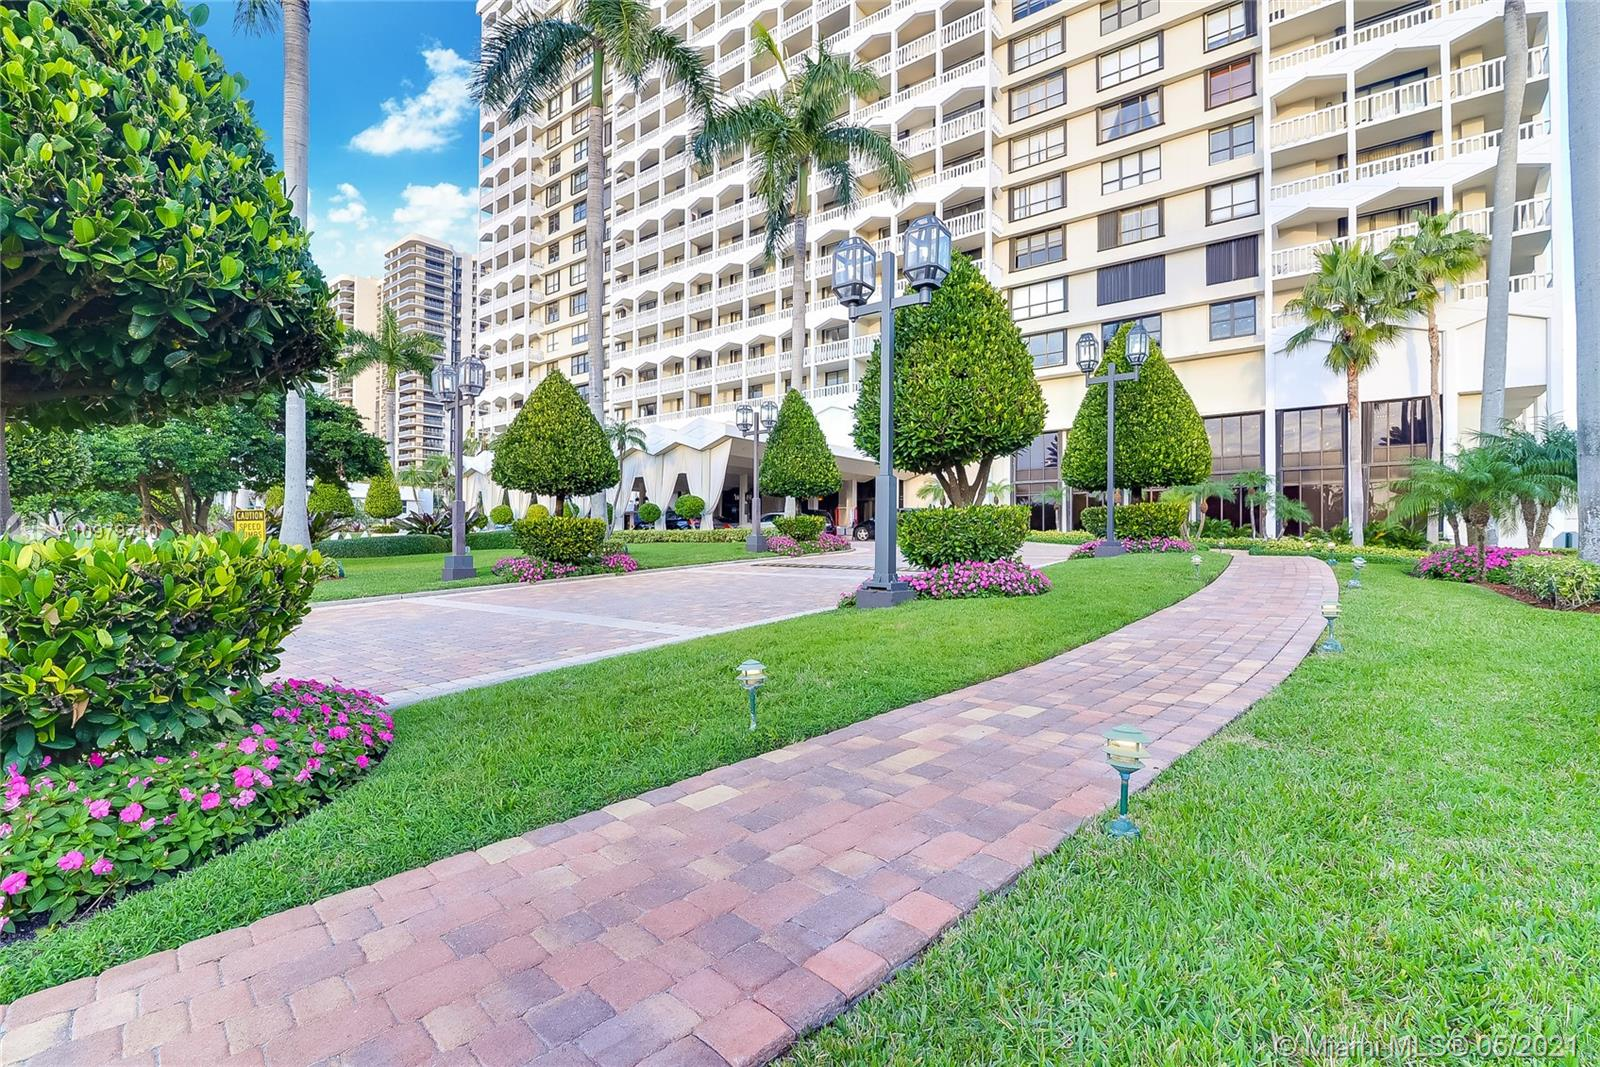 Photo of 9801 Collins Ave #10R, Bal Harbour, Florida, 33154 - More of Bal Harbour beach